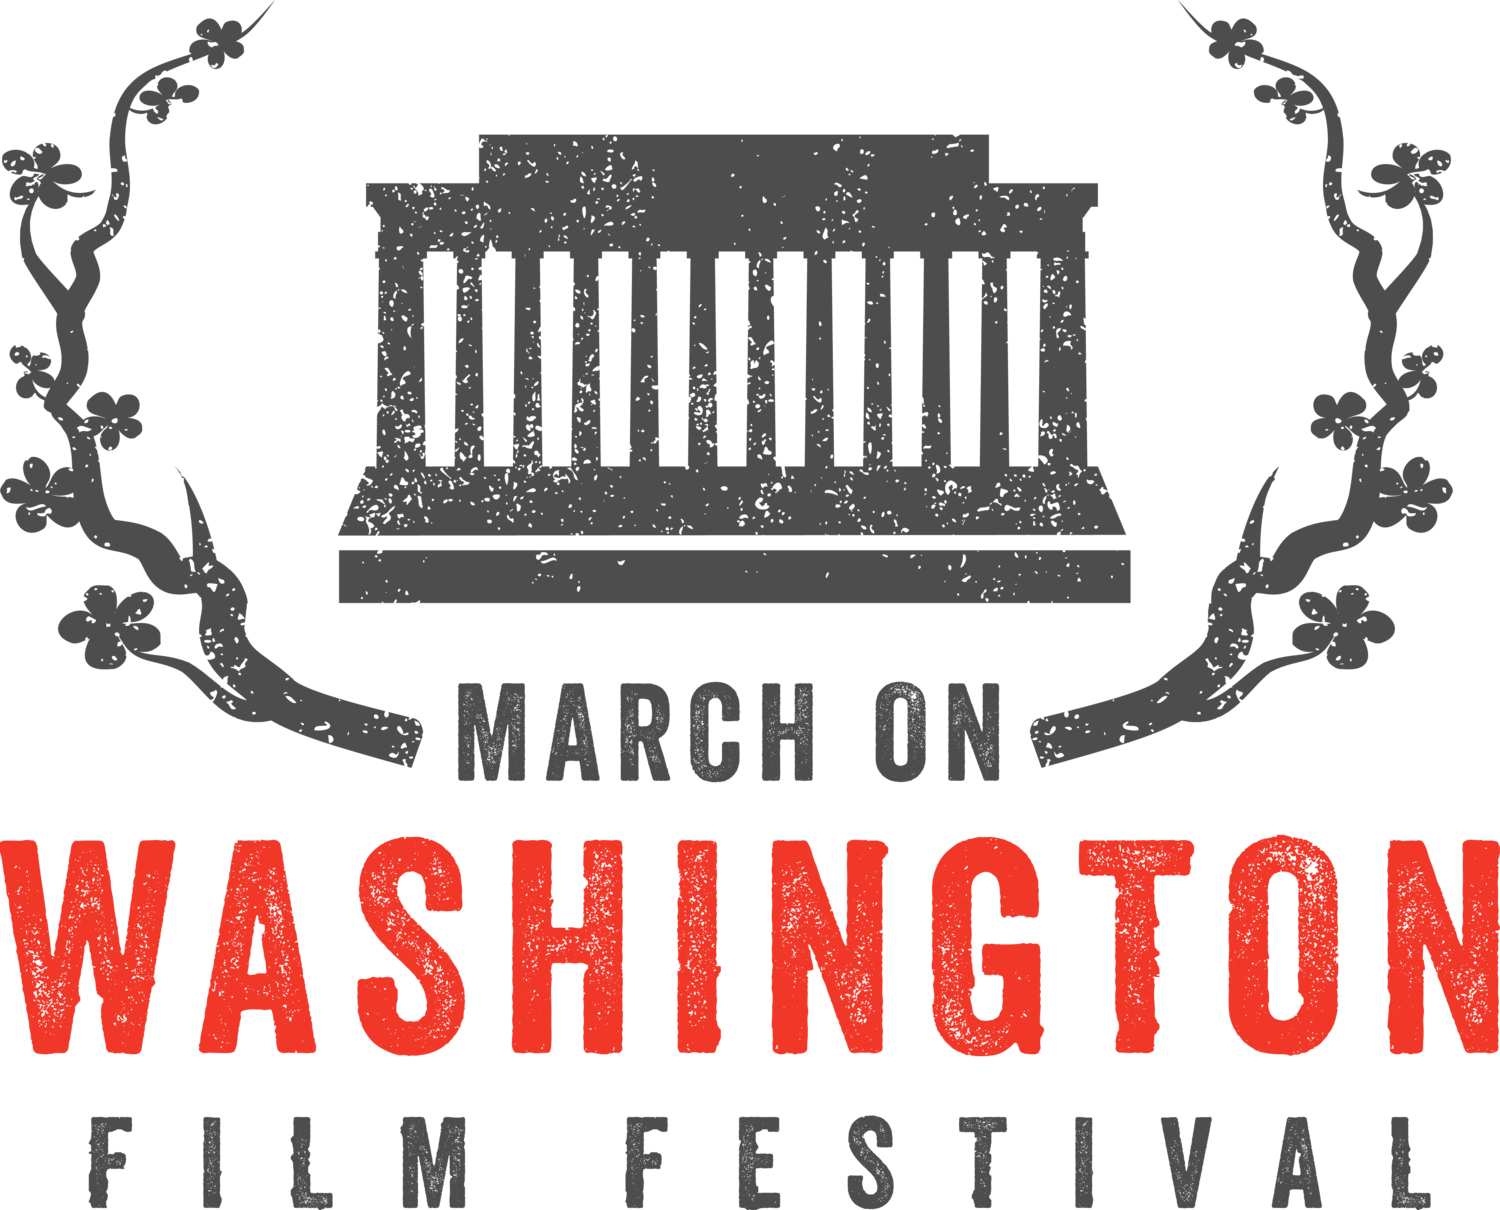 March on Washington Festival